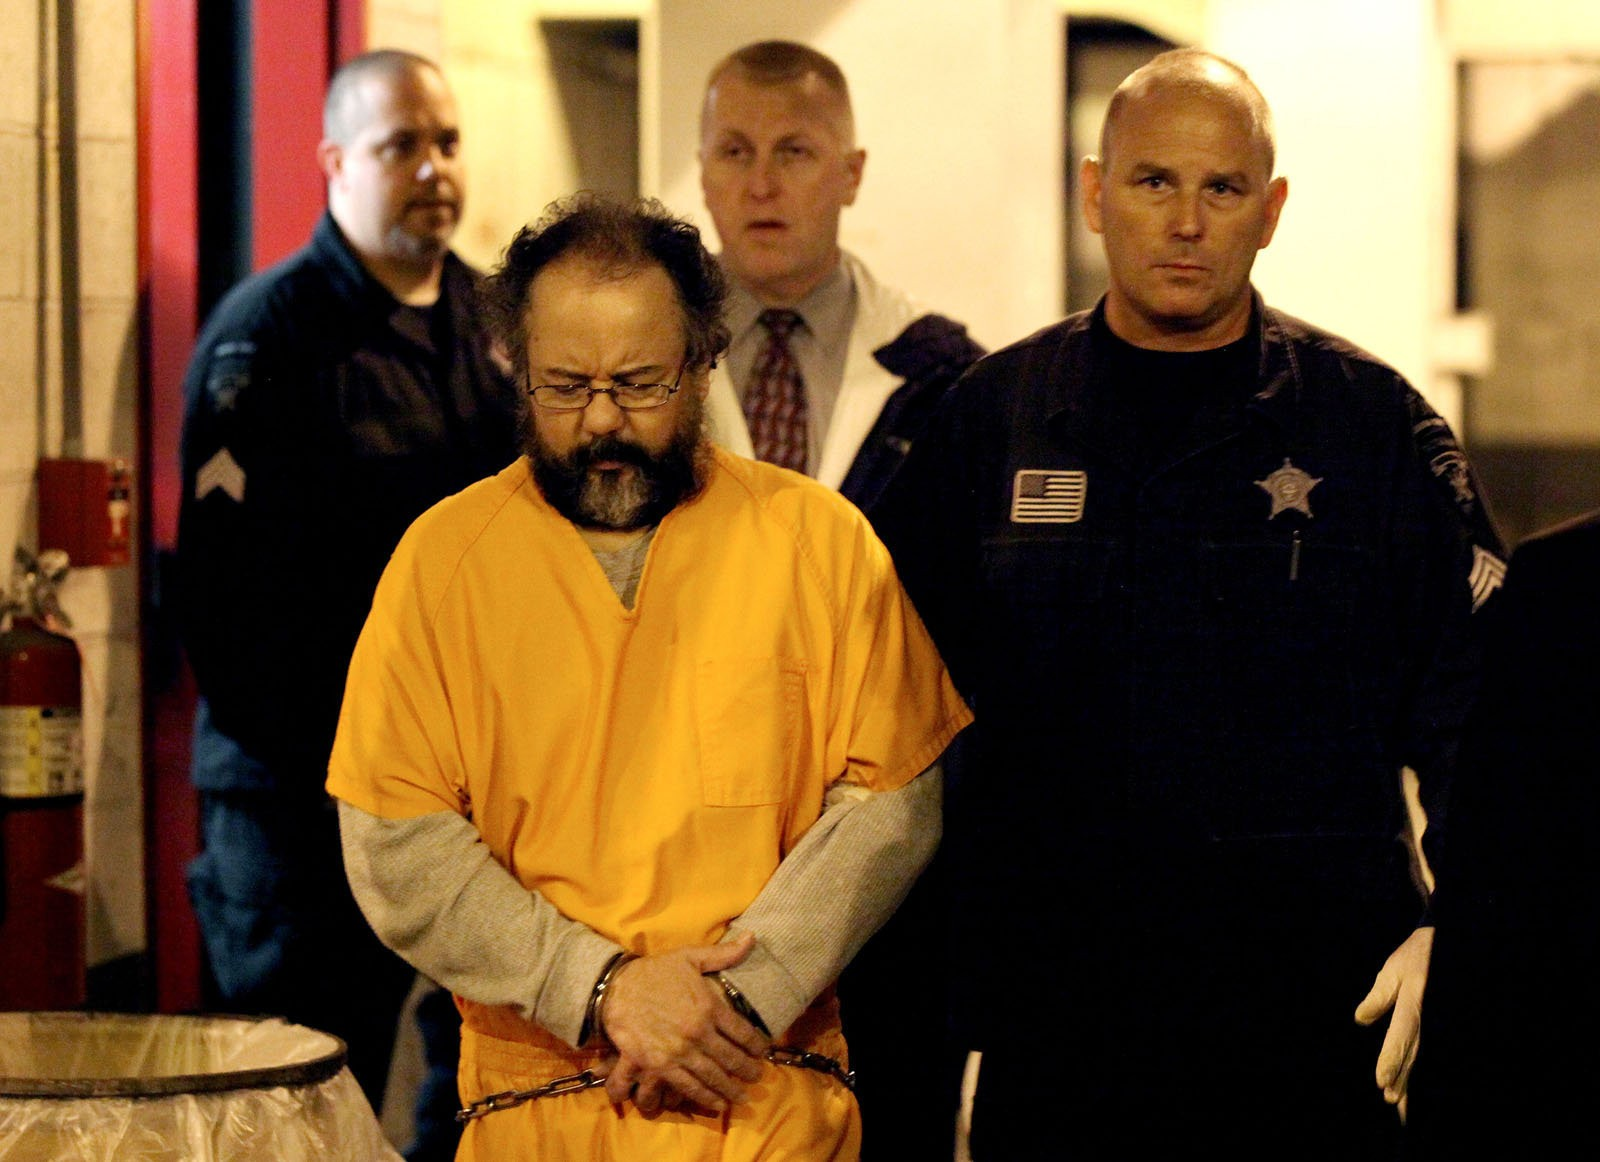 Ariel Castro's crimes against three Cleveland woman served as motivation for a lawmaker to introduce legislation that would expand the death penalty in Ohio.